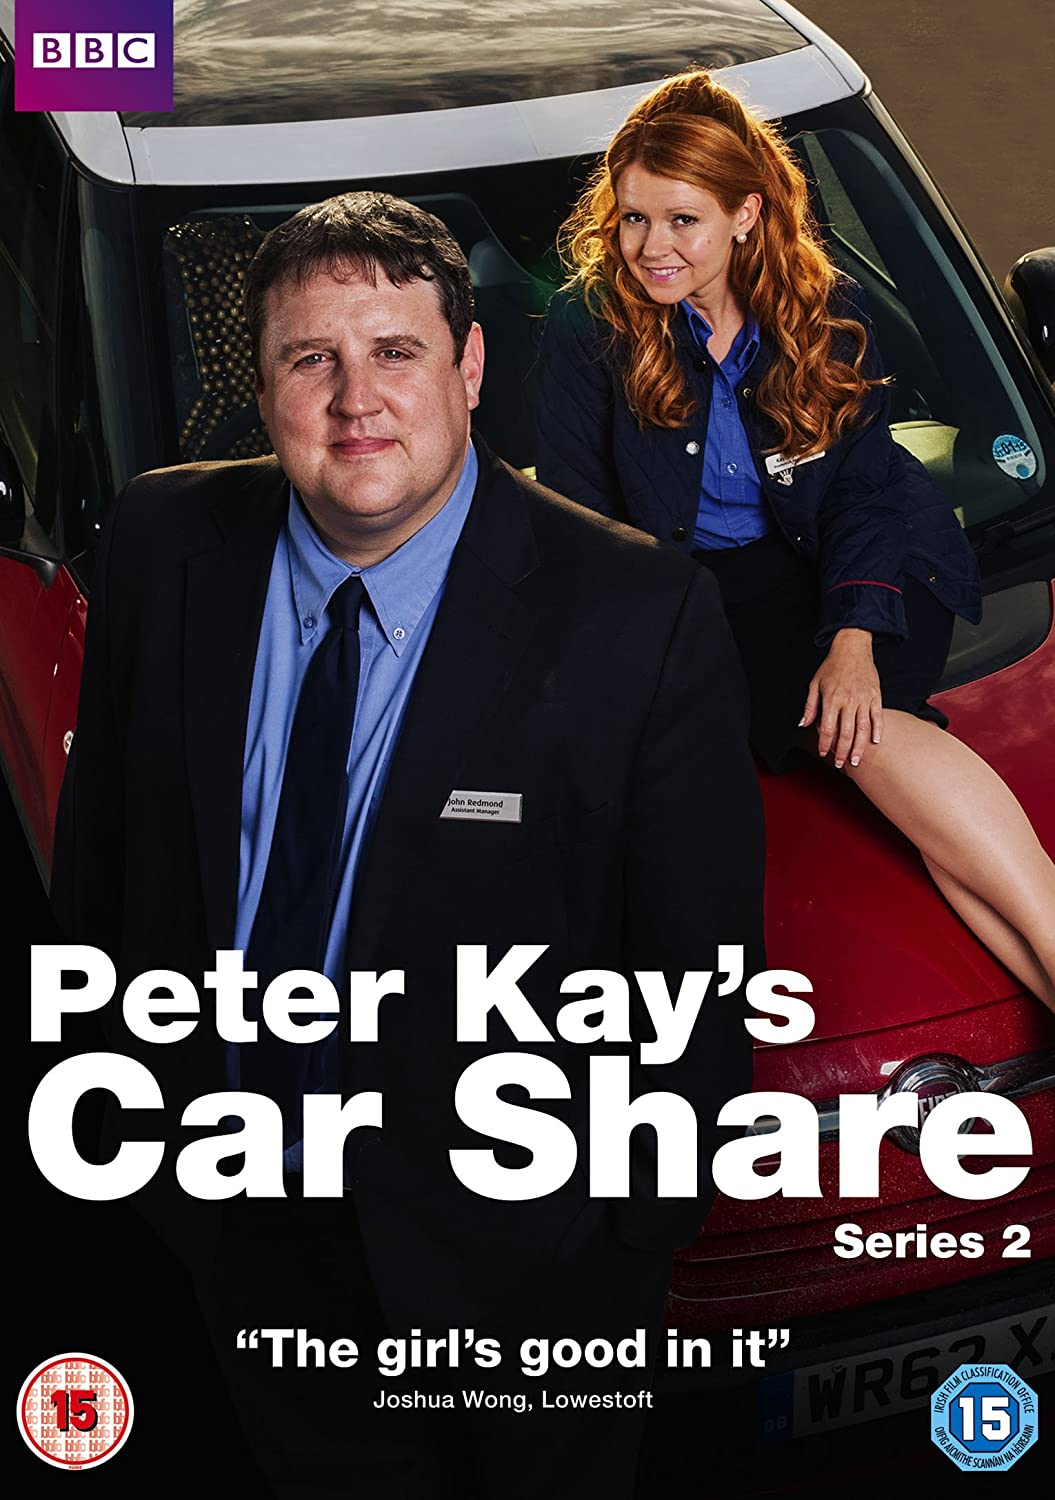 Peter Kay's Car Share: Series 2